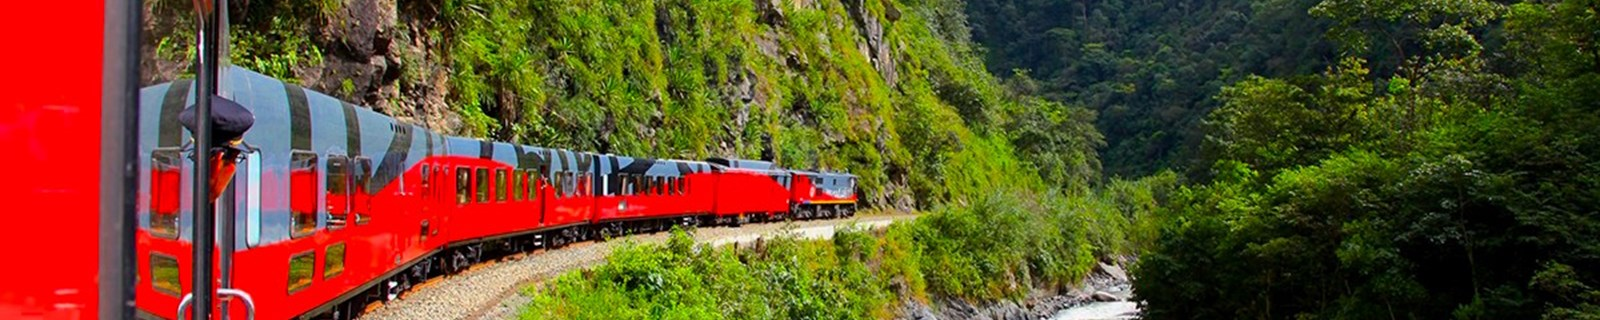 Train to the Clouds - Guayaquil to Quito - Holidays in Tren Crucero Ecuador